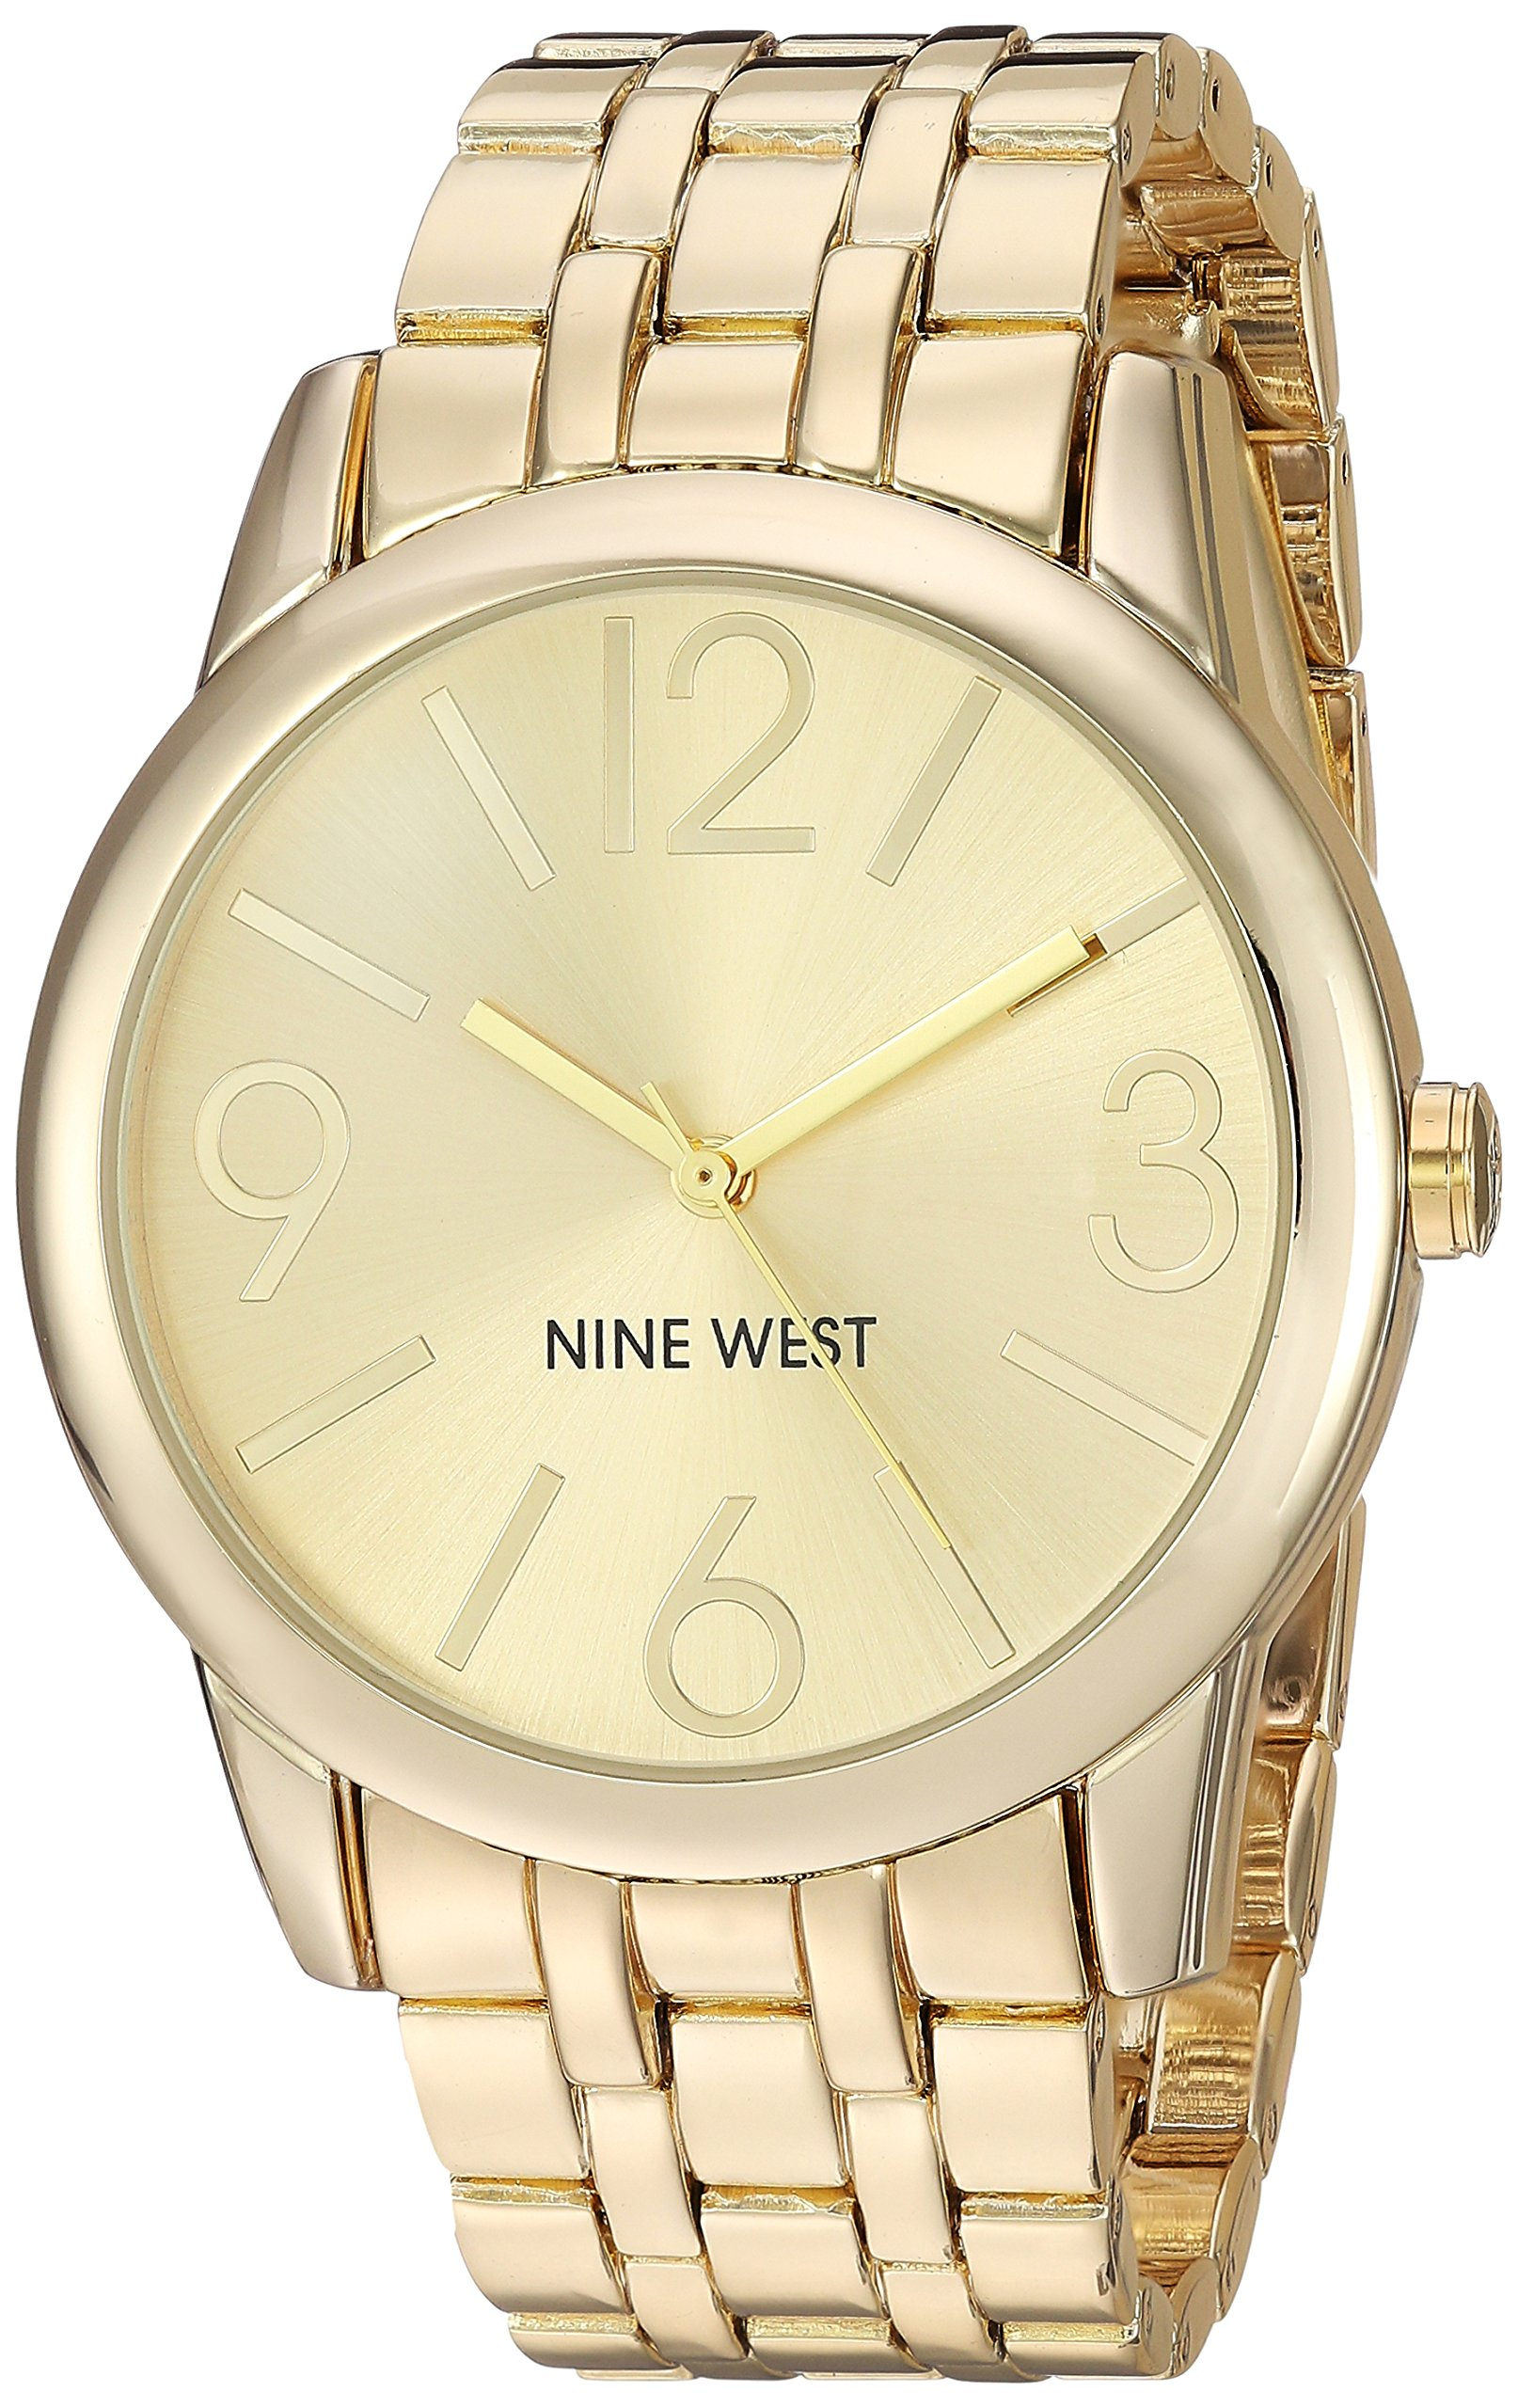 Nine West Women's NW/1578CHGB Champagne Dial Gold-Tone Bracelet Watch by Nine West